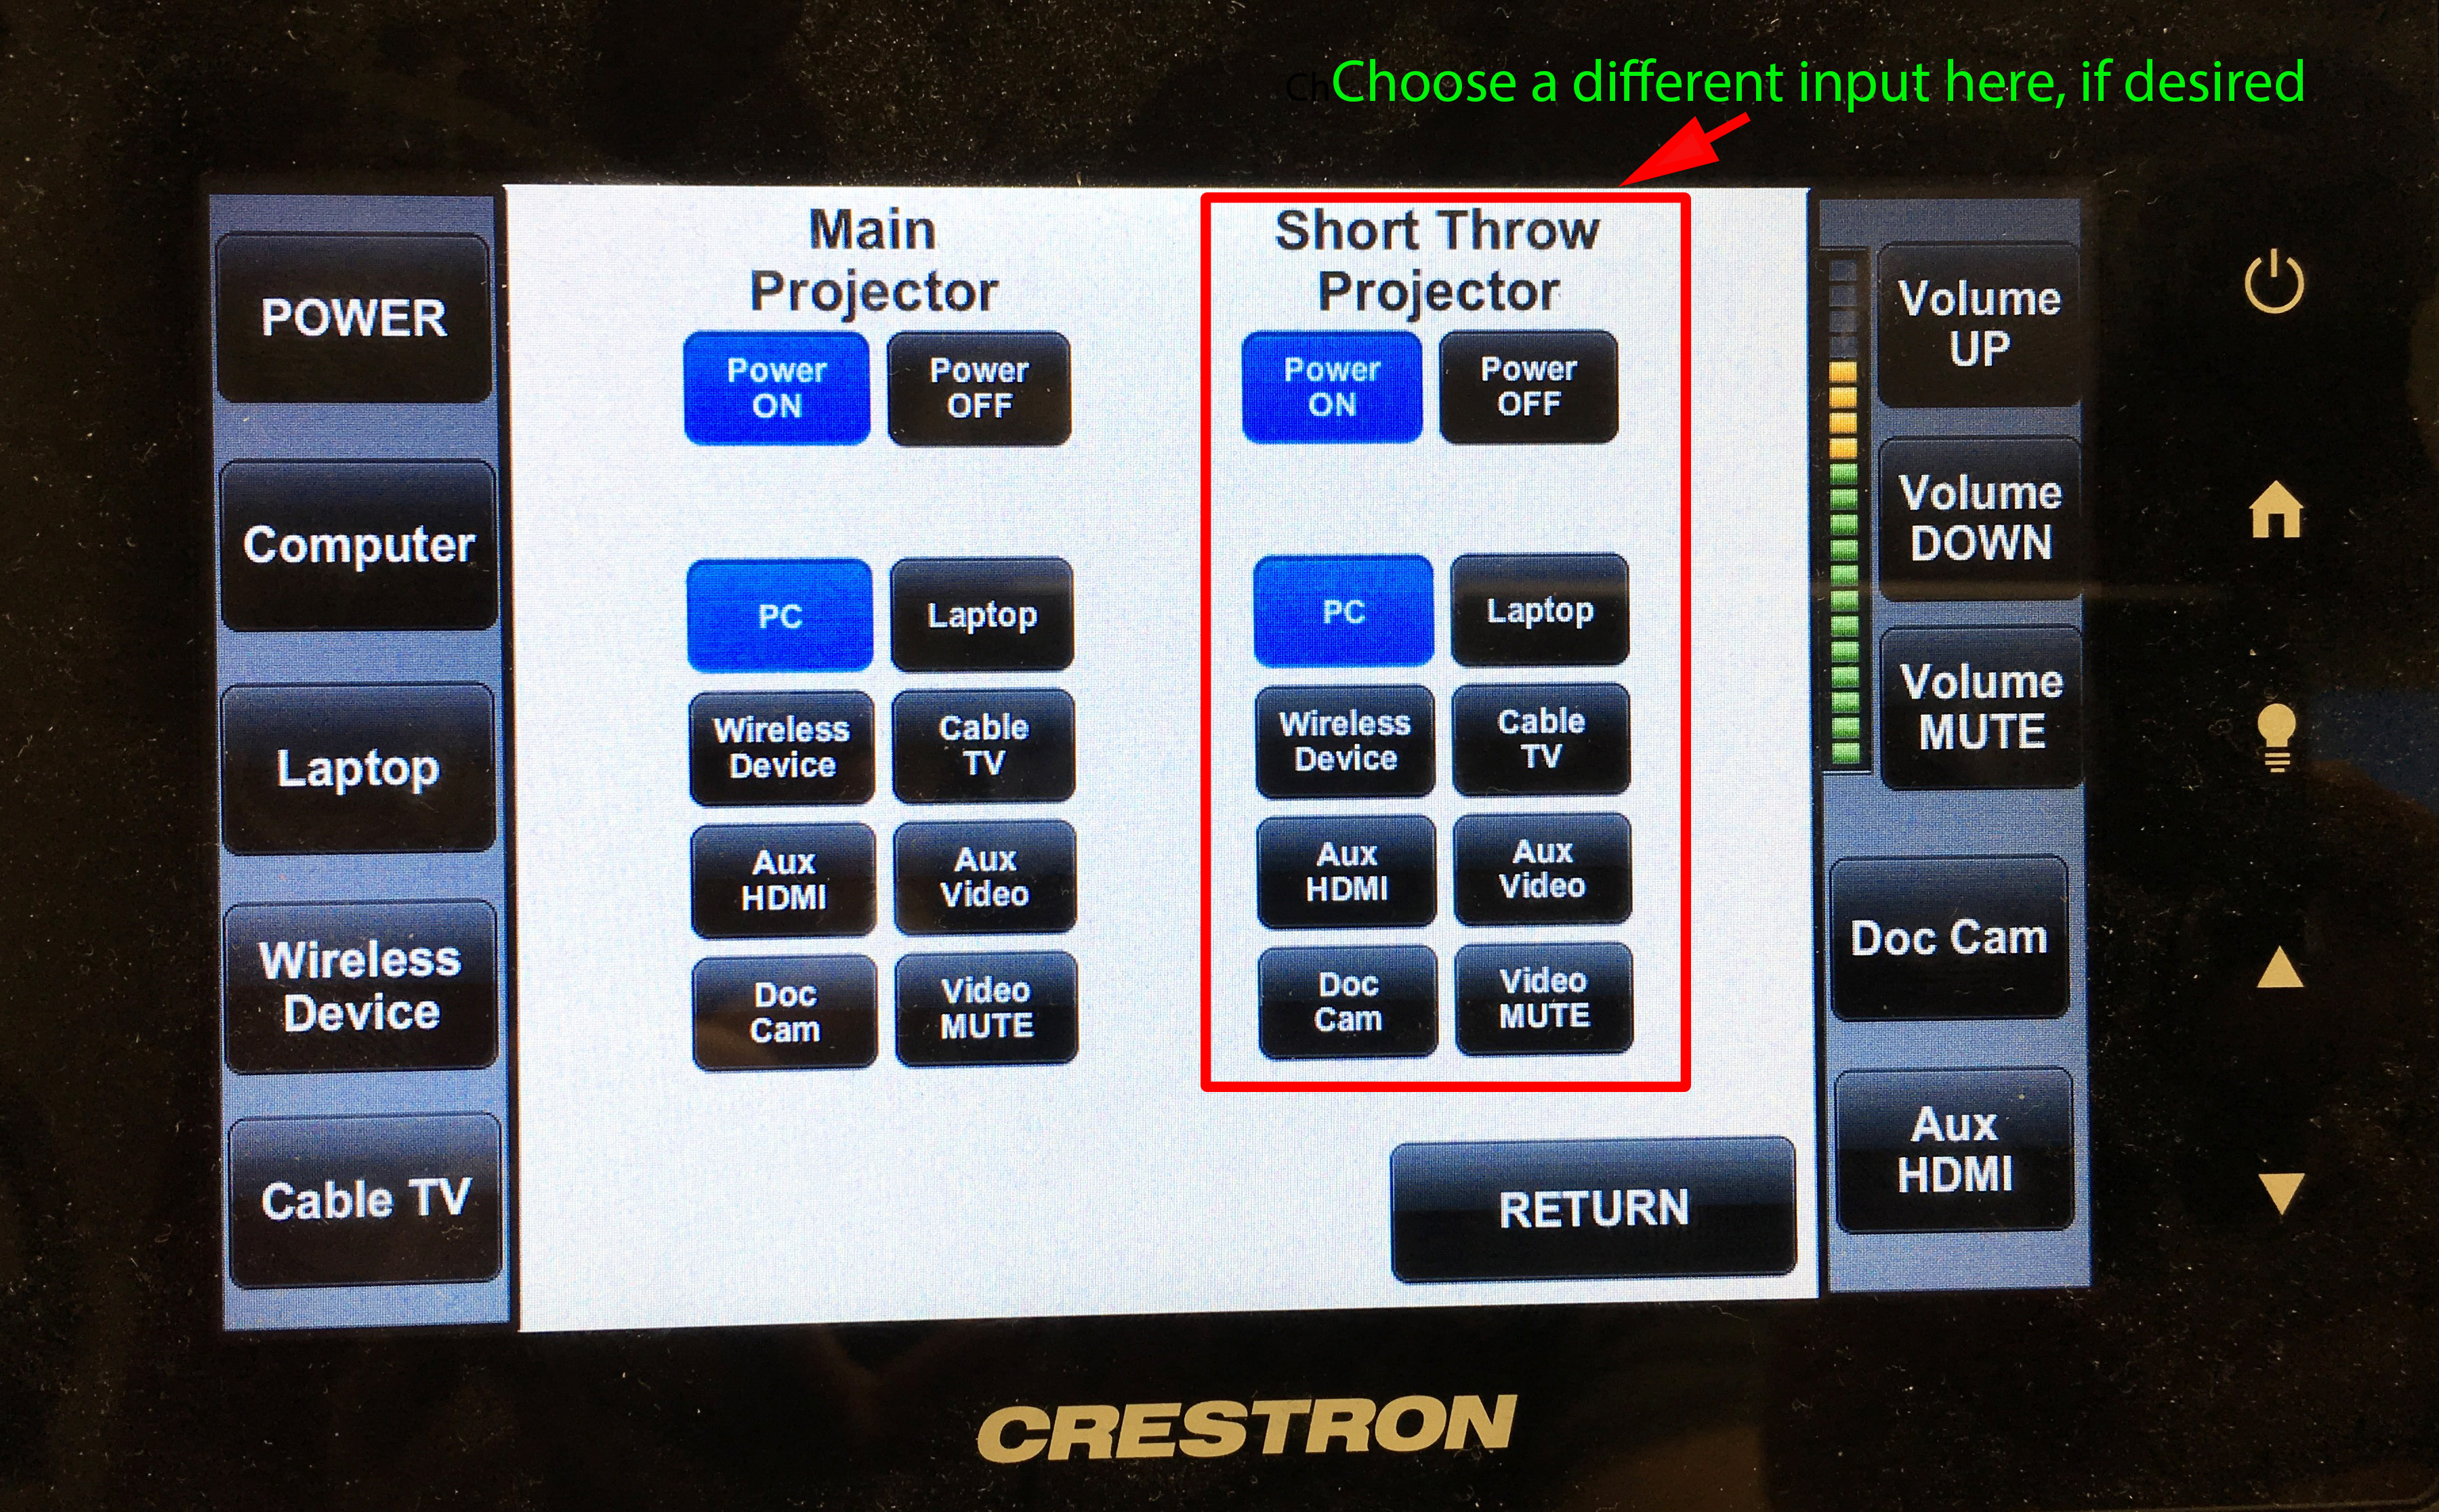 image of advanced projector options, with the short throw projector options indicated